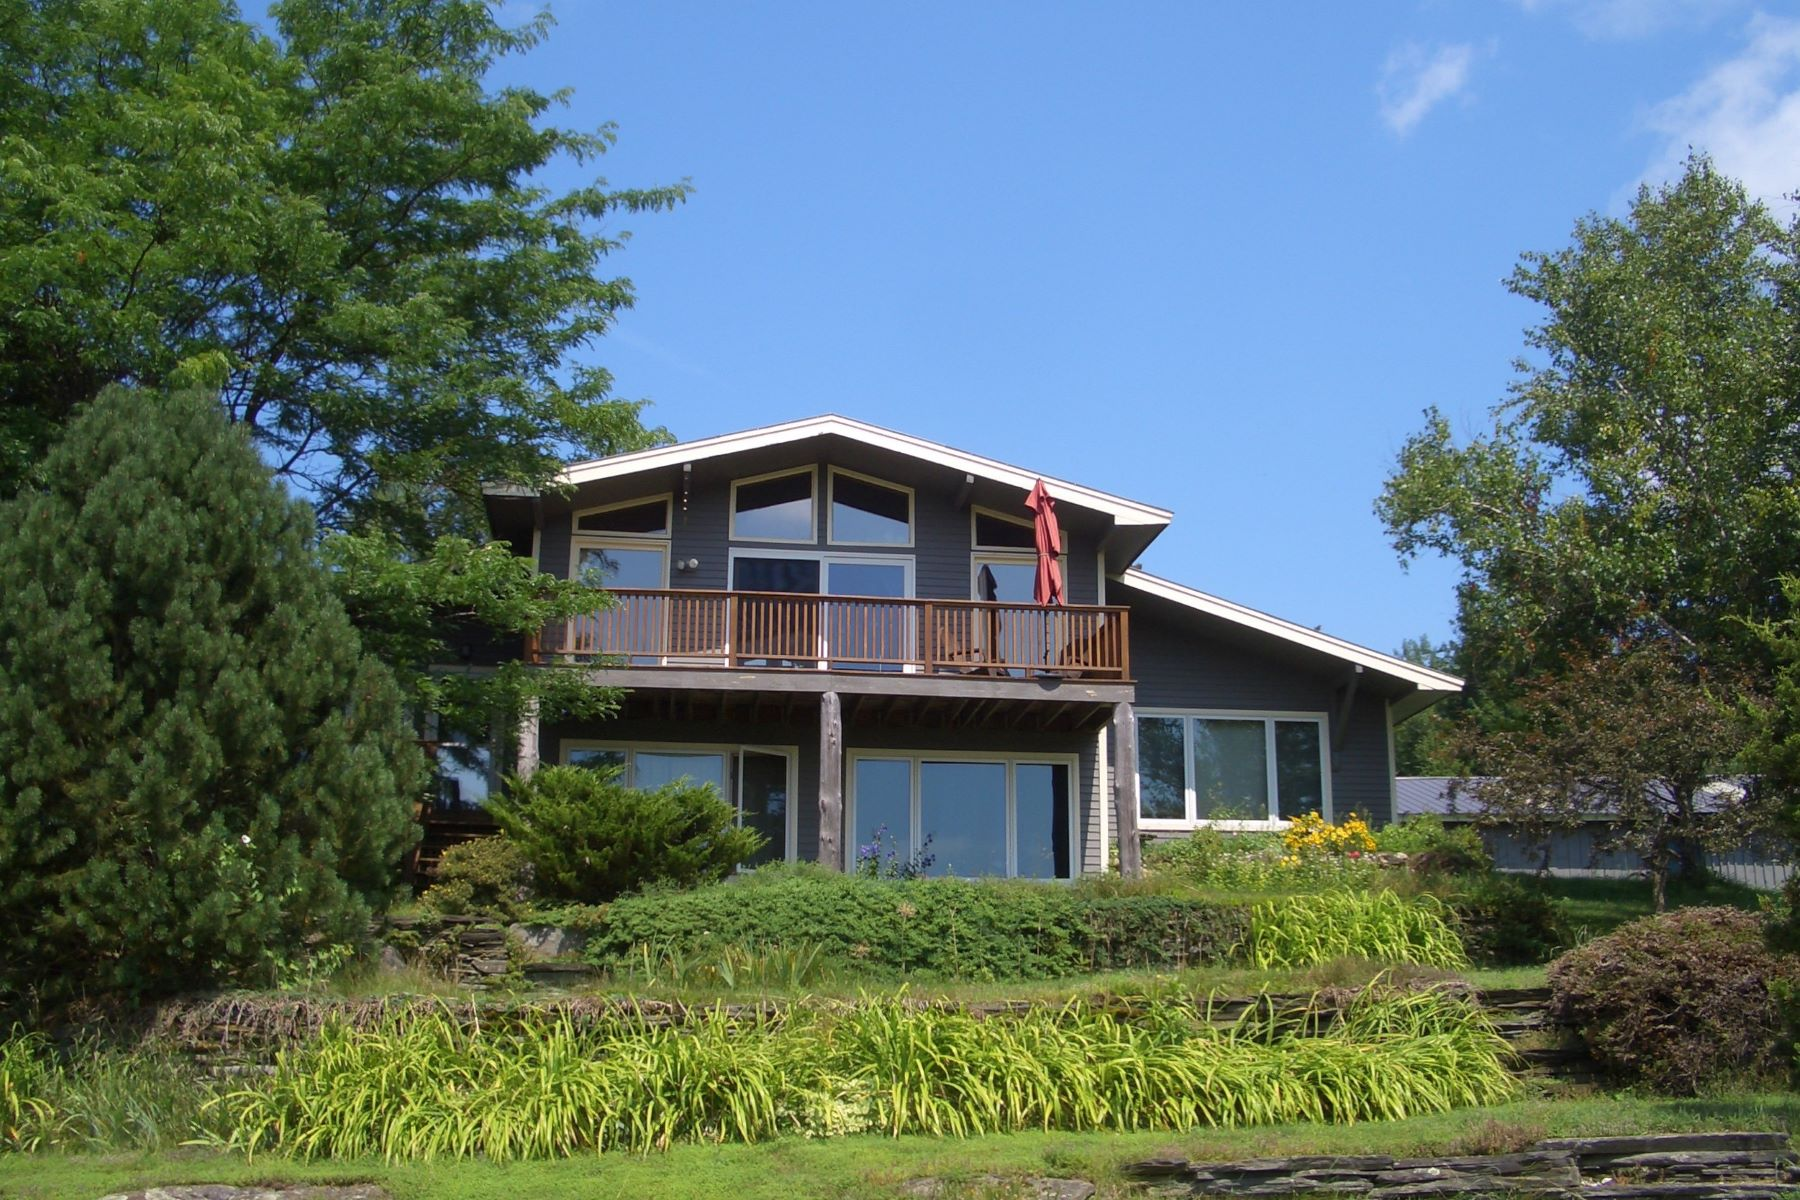 Single Family Home for Sale at 19 Horton Hill Road, Chittenden 19 Horton Hill Rd Chittenden, Vermont 05737 United States